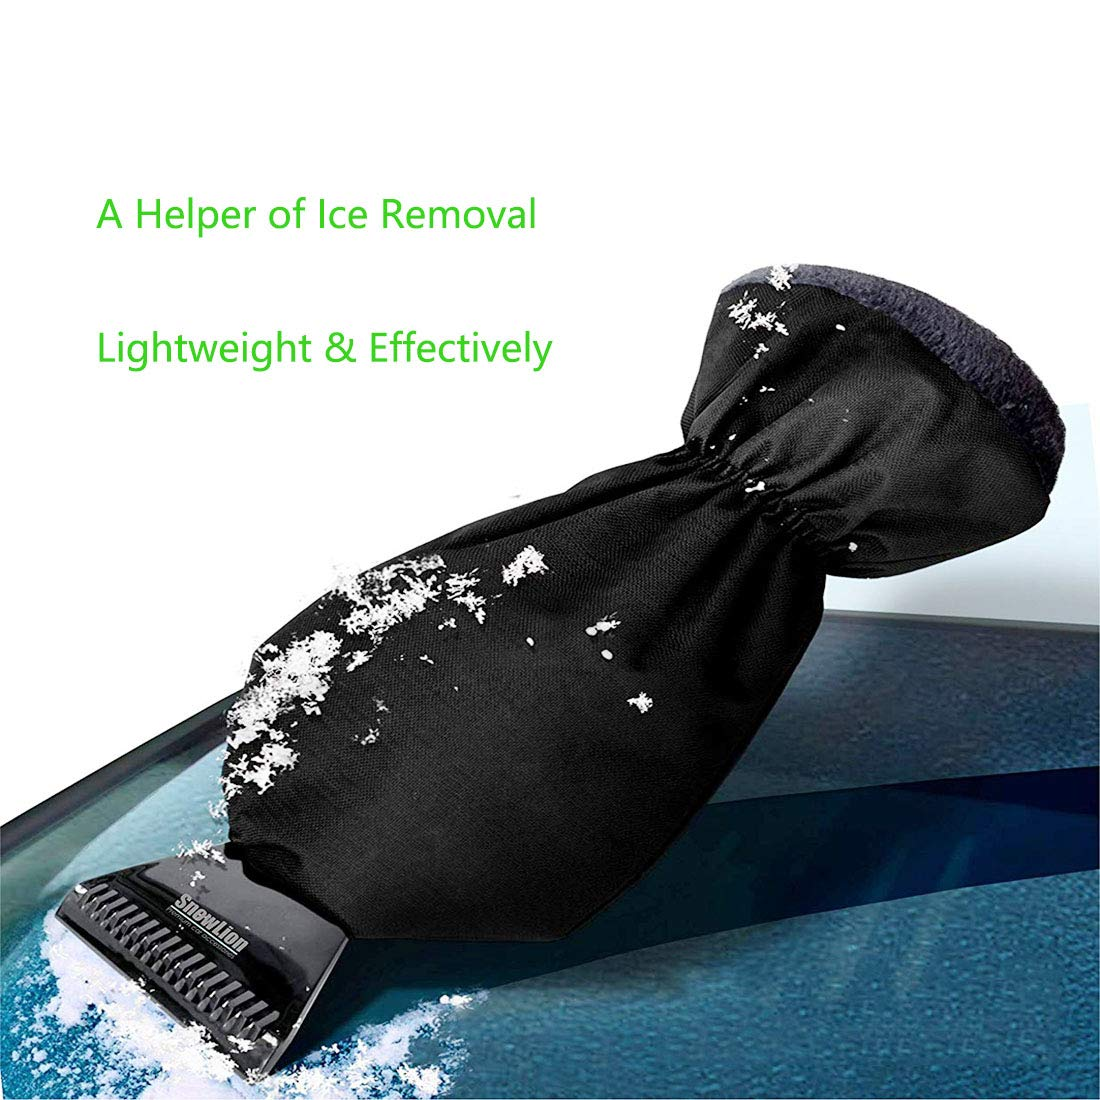 Effectively Warm Lined Lightweight Snow Shovel Defrost Scrapers with Waterproof Glove AMOUTOR 2 Pack Ice Scraper Mitts Black